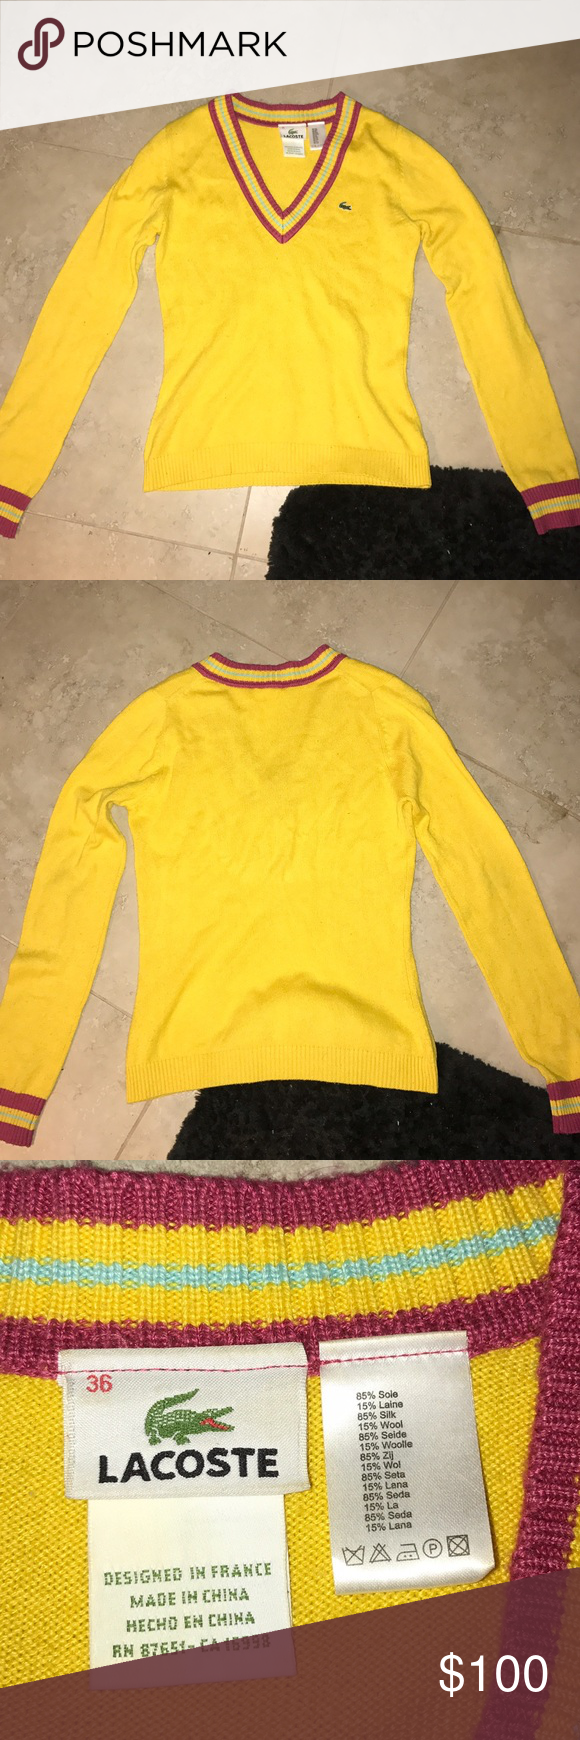 Lacoste Yellow V-Neck Sweater | Yellow sweater, Lacoste and Finals